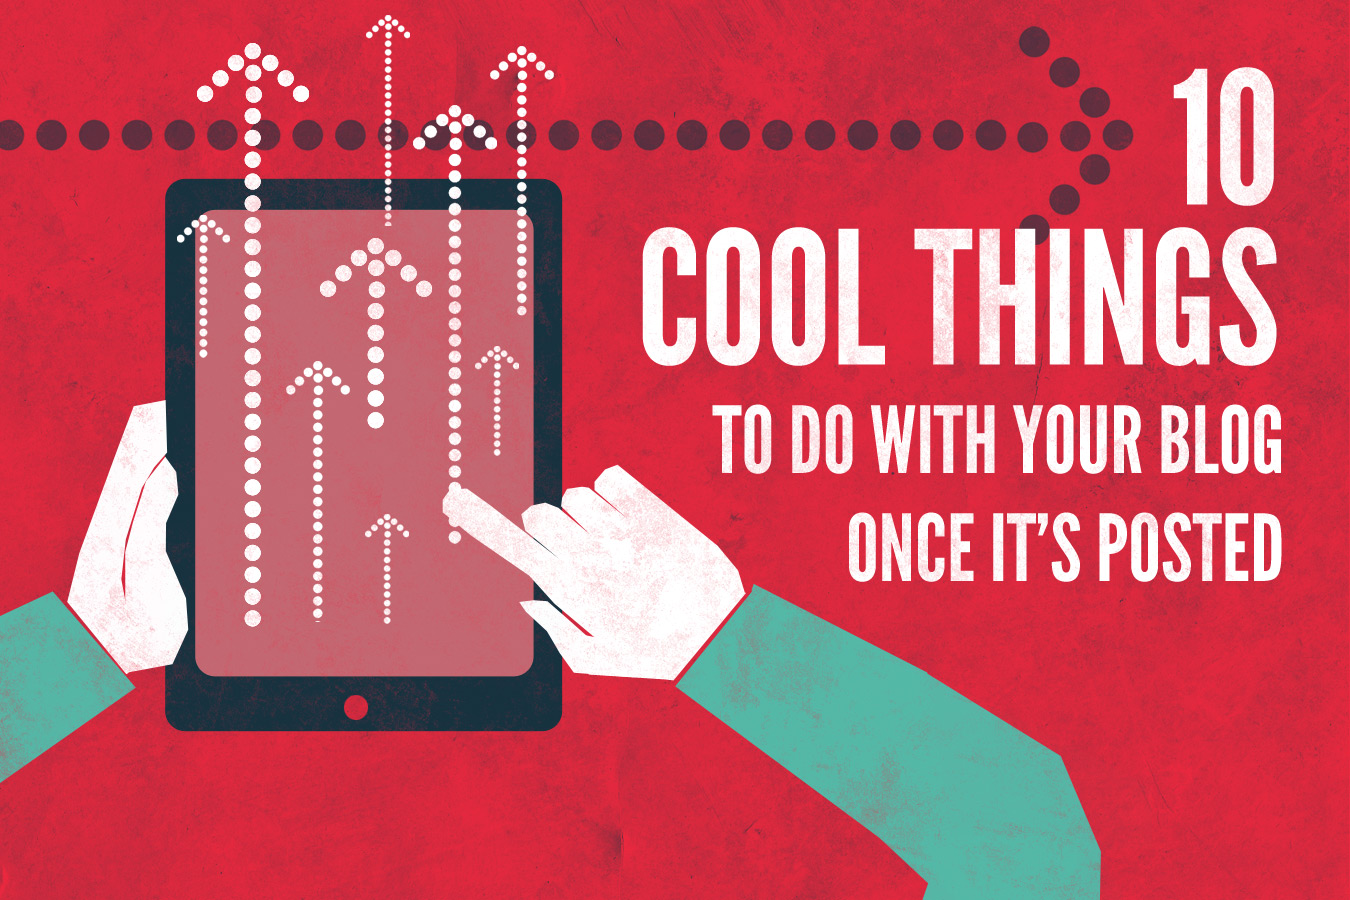 10 Cool Things to Do with your Blog Once it's Posted